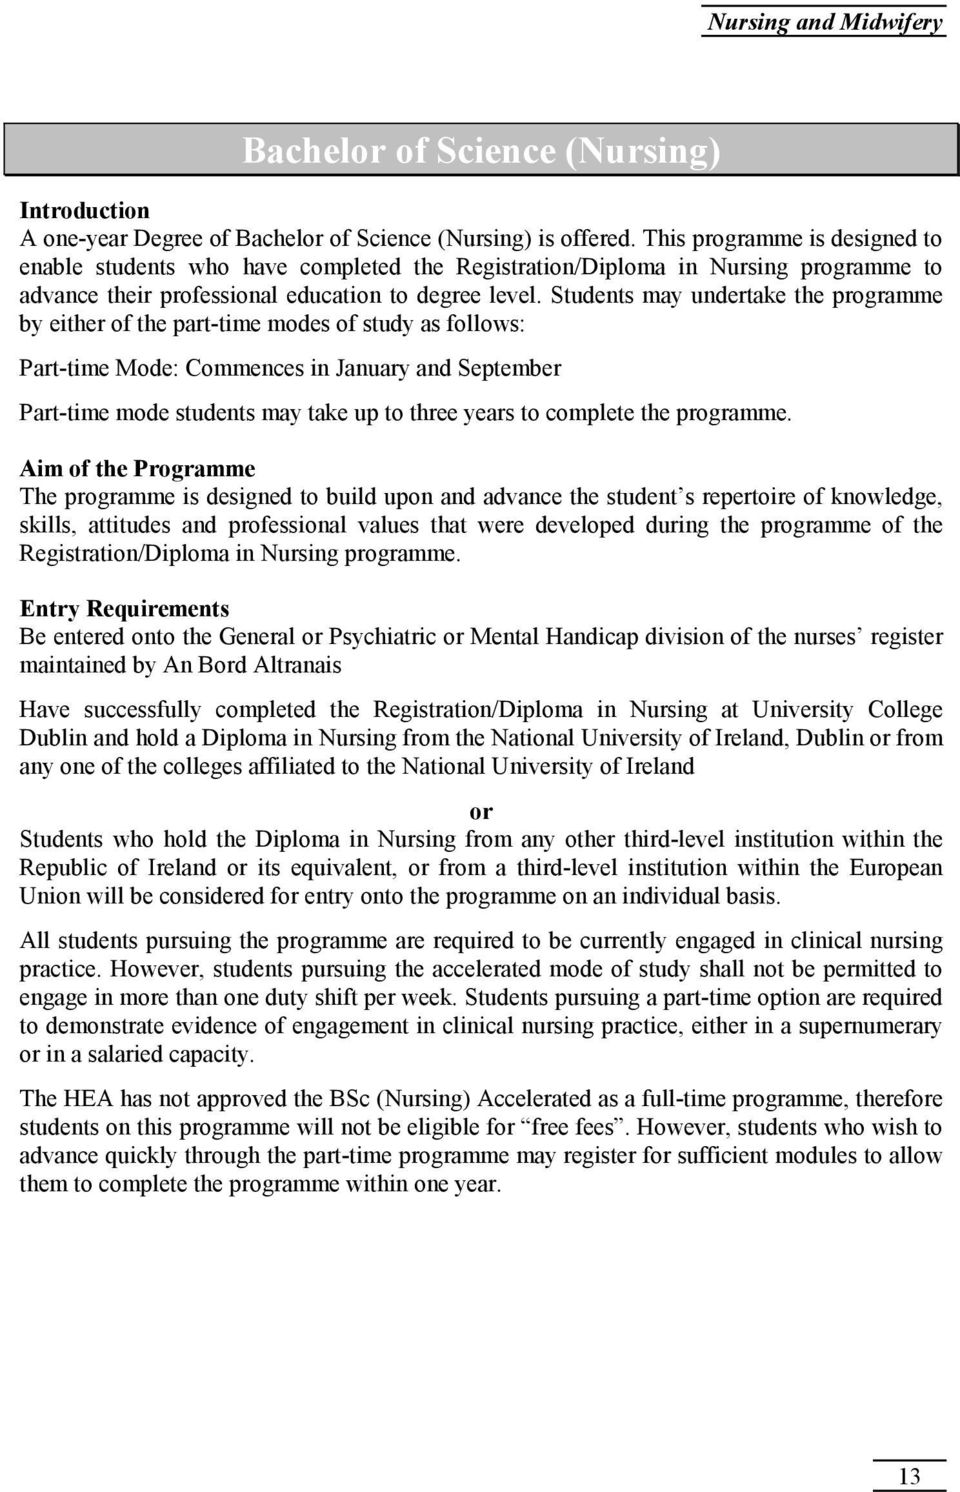 Students may undertake the programme by either of the part-time modes of study as follows: Part-time Mode: Commences in January and September Part-time mode students may take up to three years to